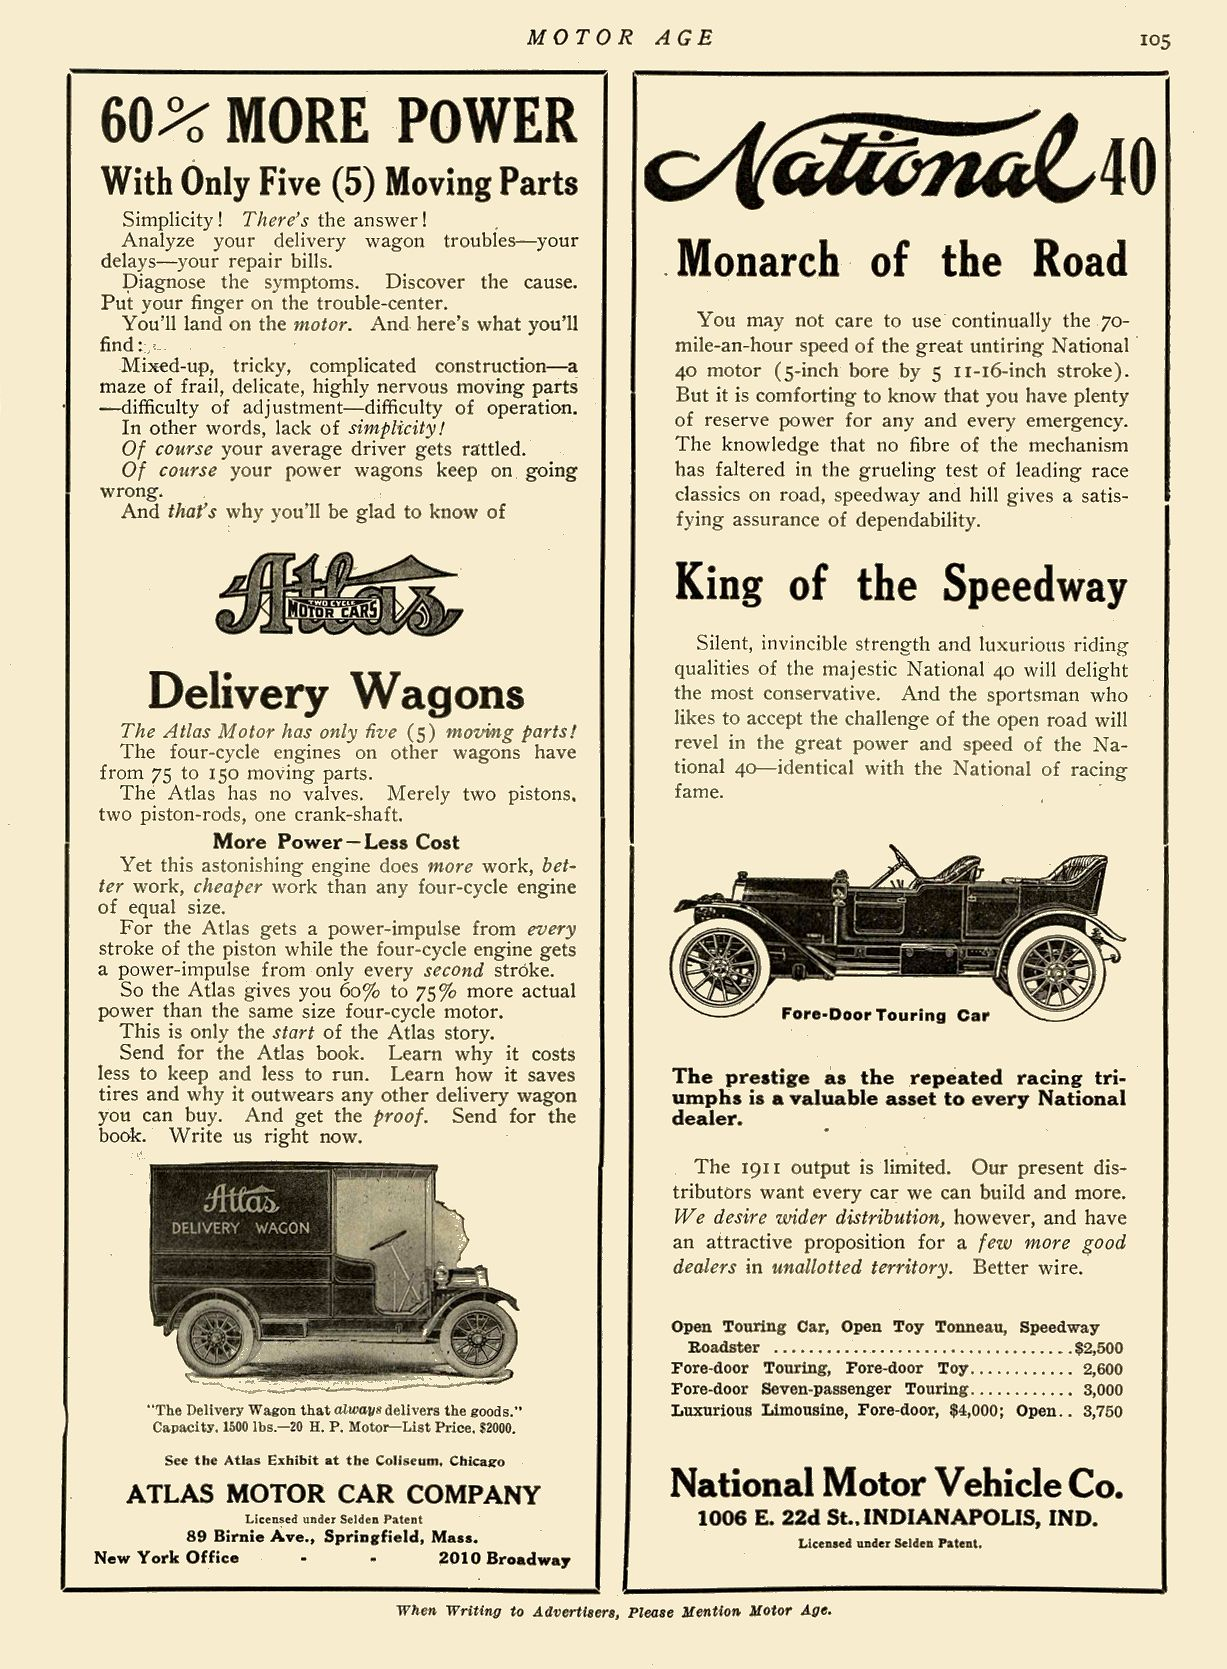 1911 1 19 NATIONAL Monarch of the Road King of the Speedway National Motor Vehicle Co. Indianapolis, IND MOTOR AGE January 19, 1911 8.25″x12″ page 105